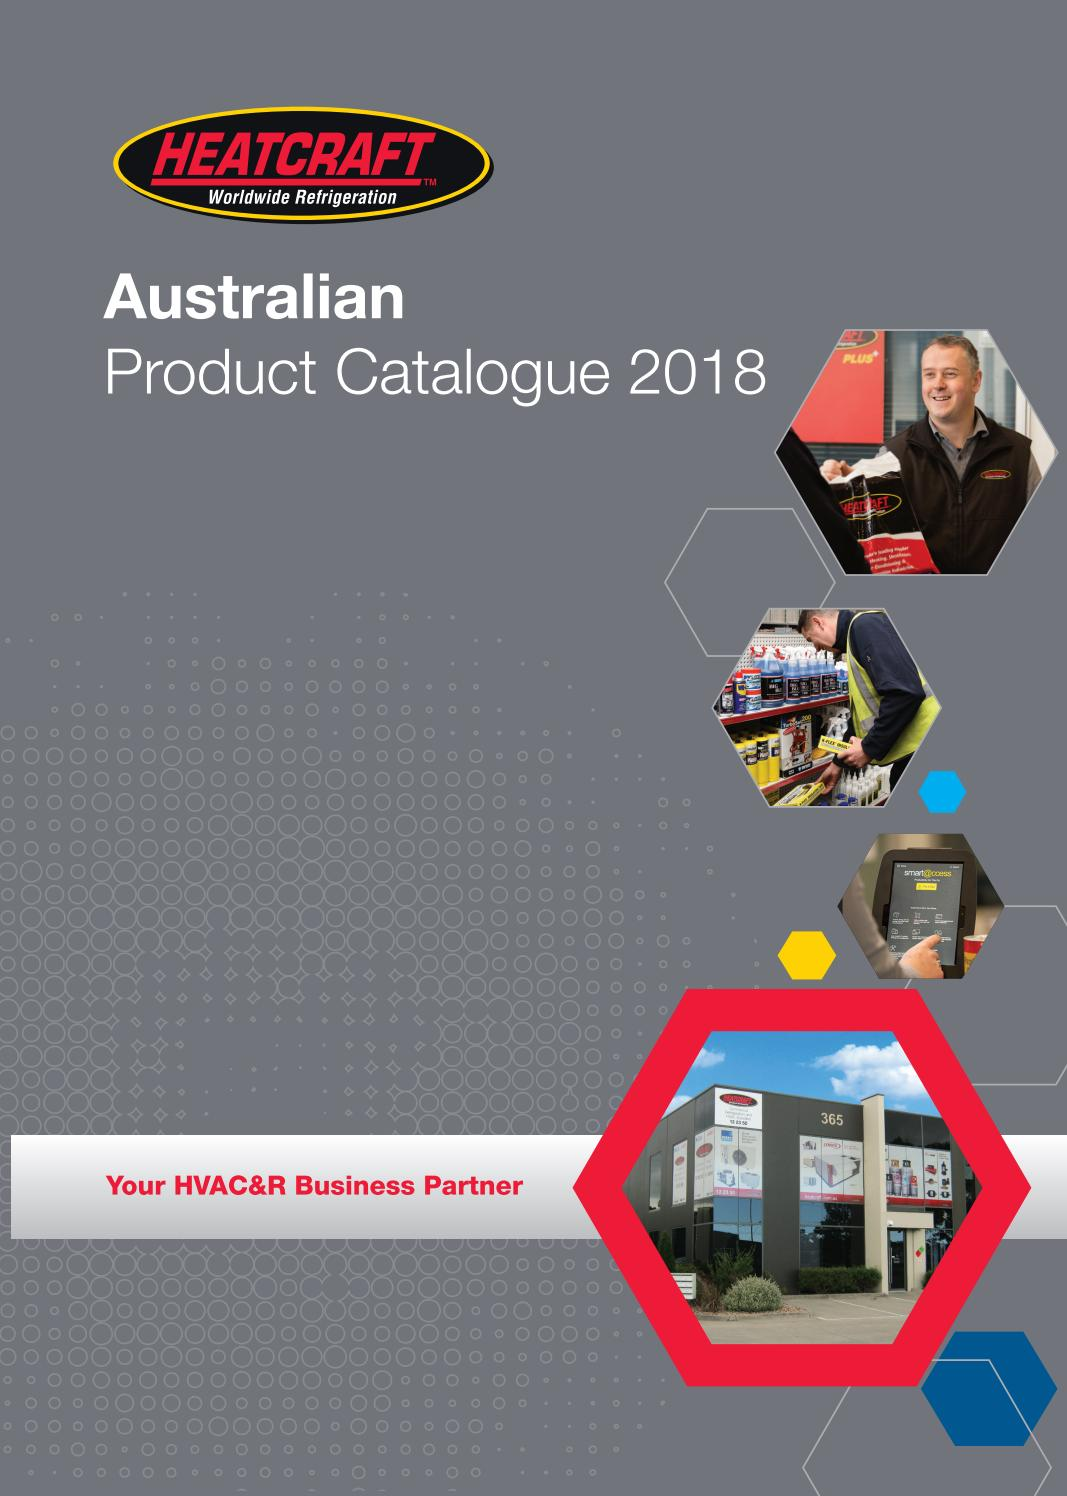 heatcraft evaporator coil wiring diagram 2018 heatcraft aus product catalogue by kirby hvac r pty ltd issuu  2018 heatcraft aus product catalogue by